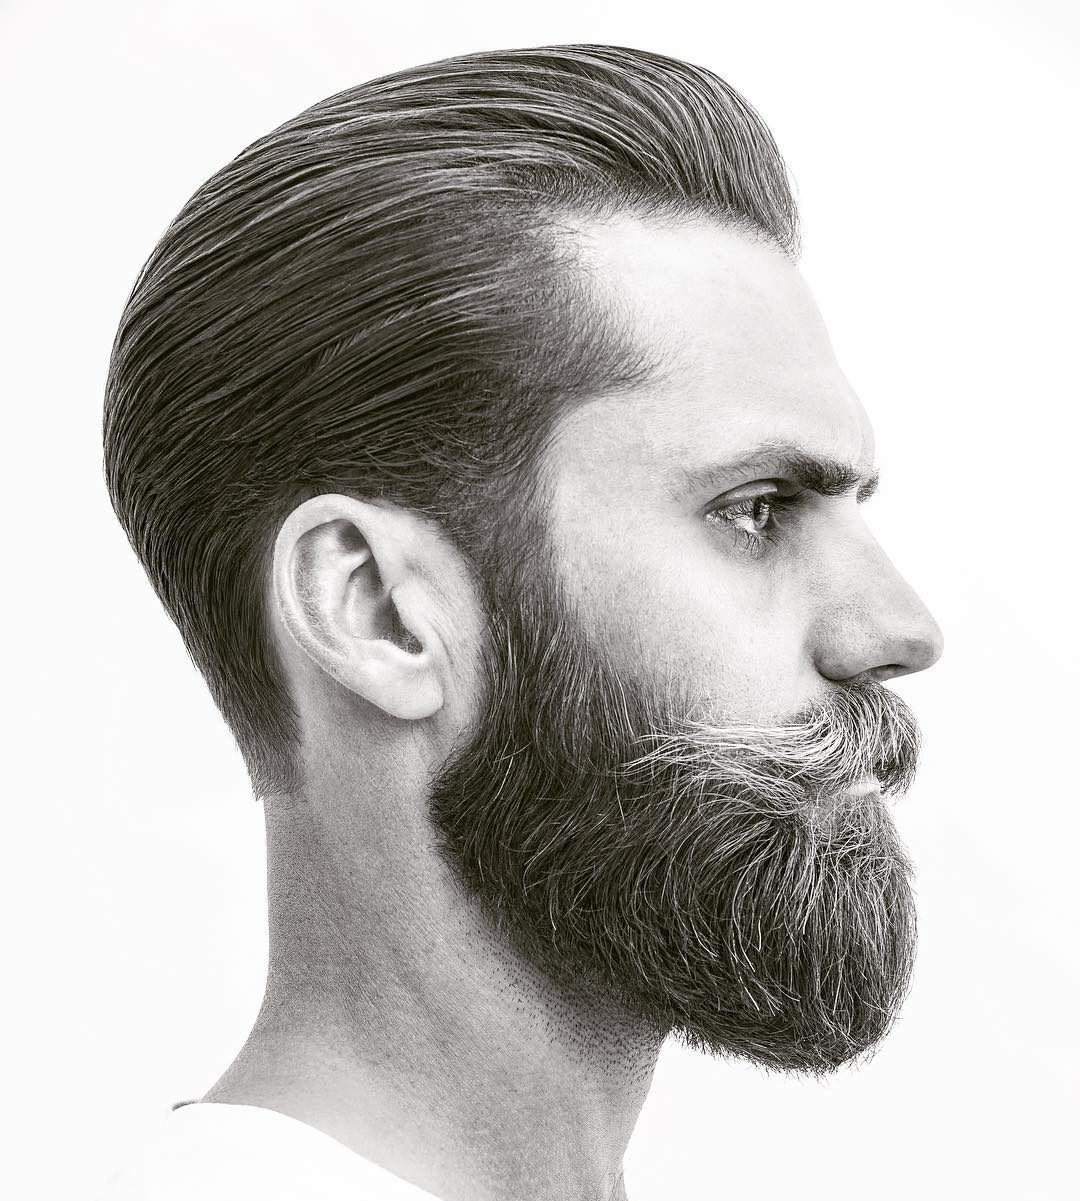 22 popular hipster haircuts for men | hipster haircut, haircuts and